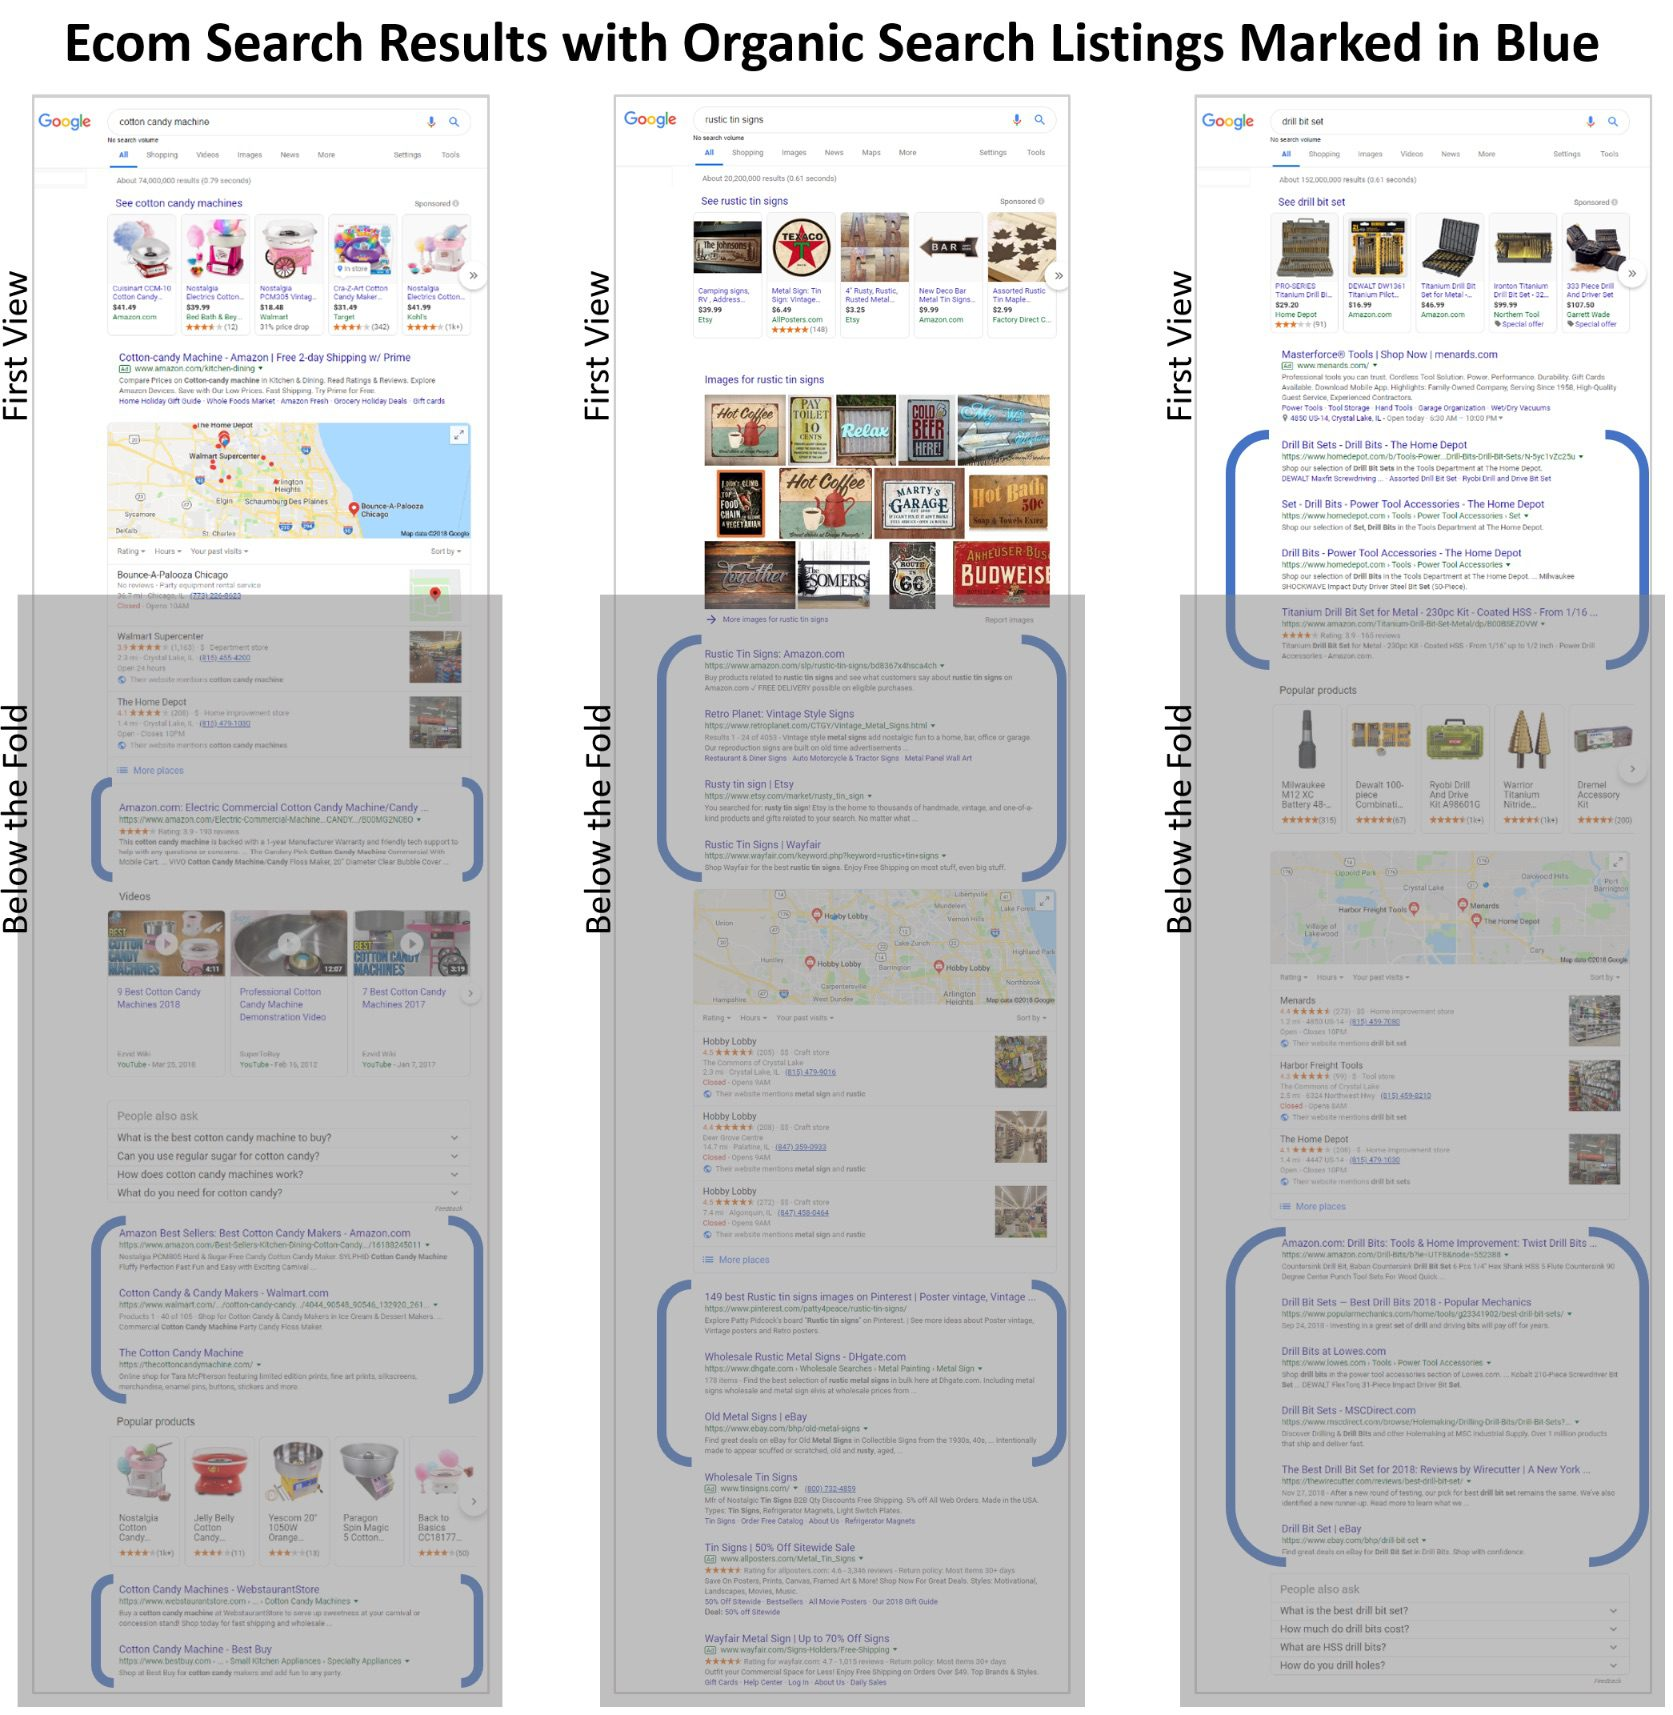 Traditional desktop search is changing, too. Search results produce more ads, images, and videos. <em>Click image to enlarge.</em>